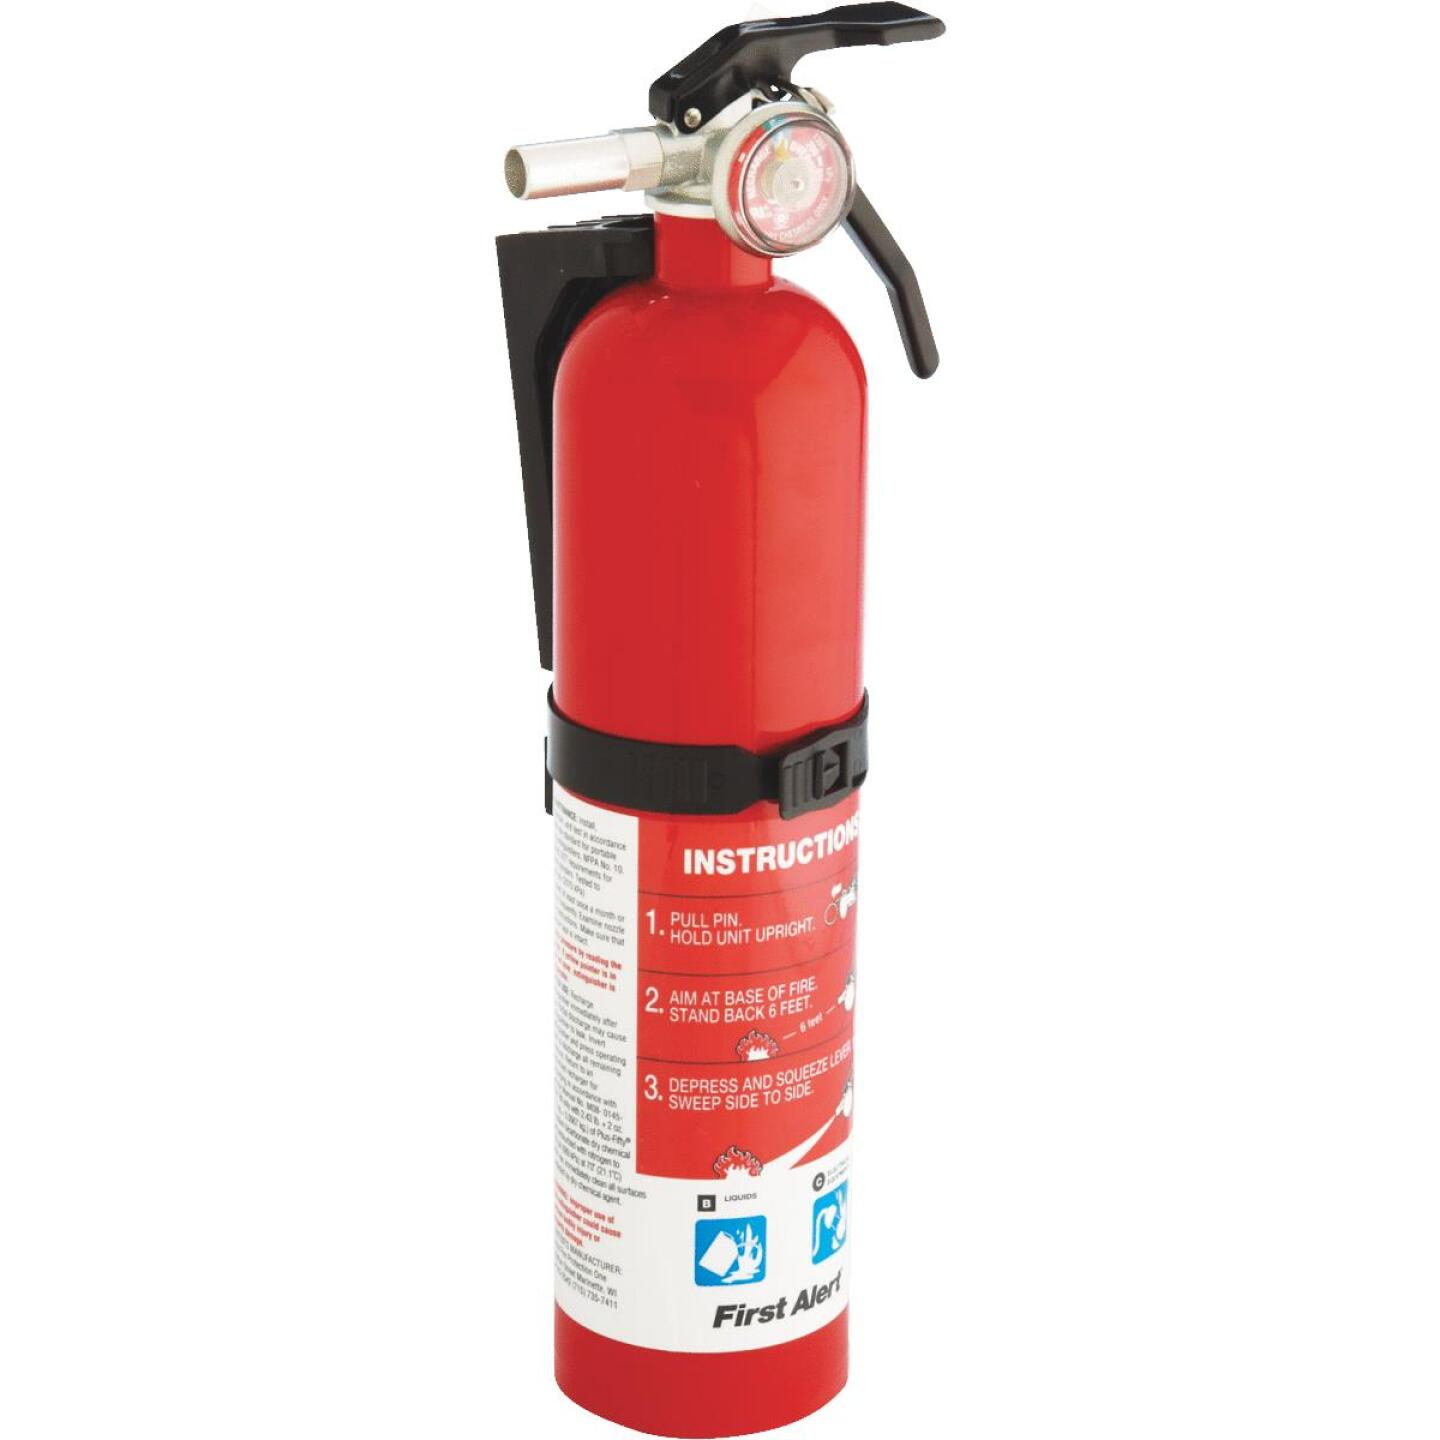 First Alert 10-B:C Rechargeable Garage Fire Extinguisher Image 3